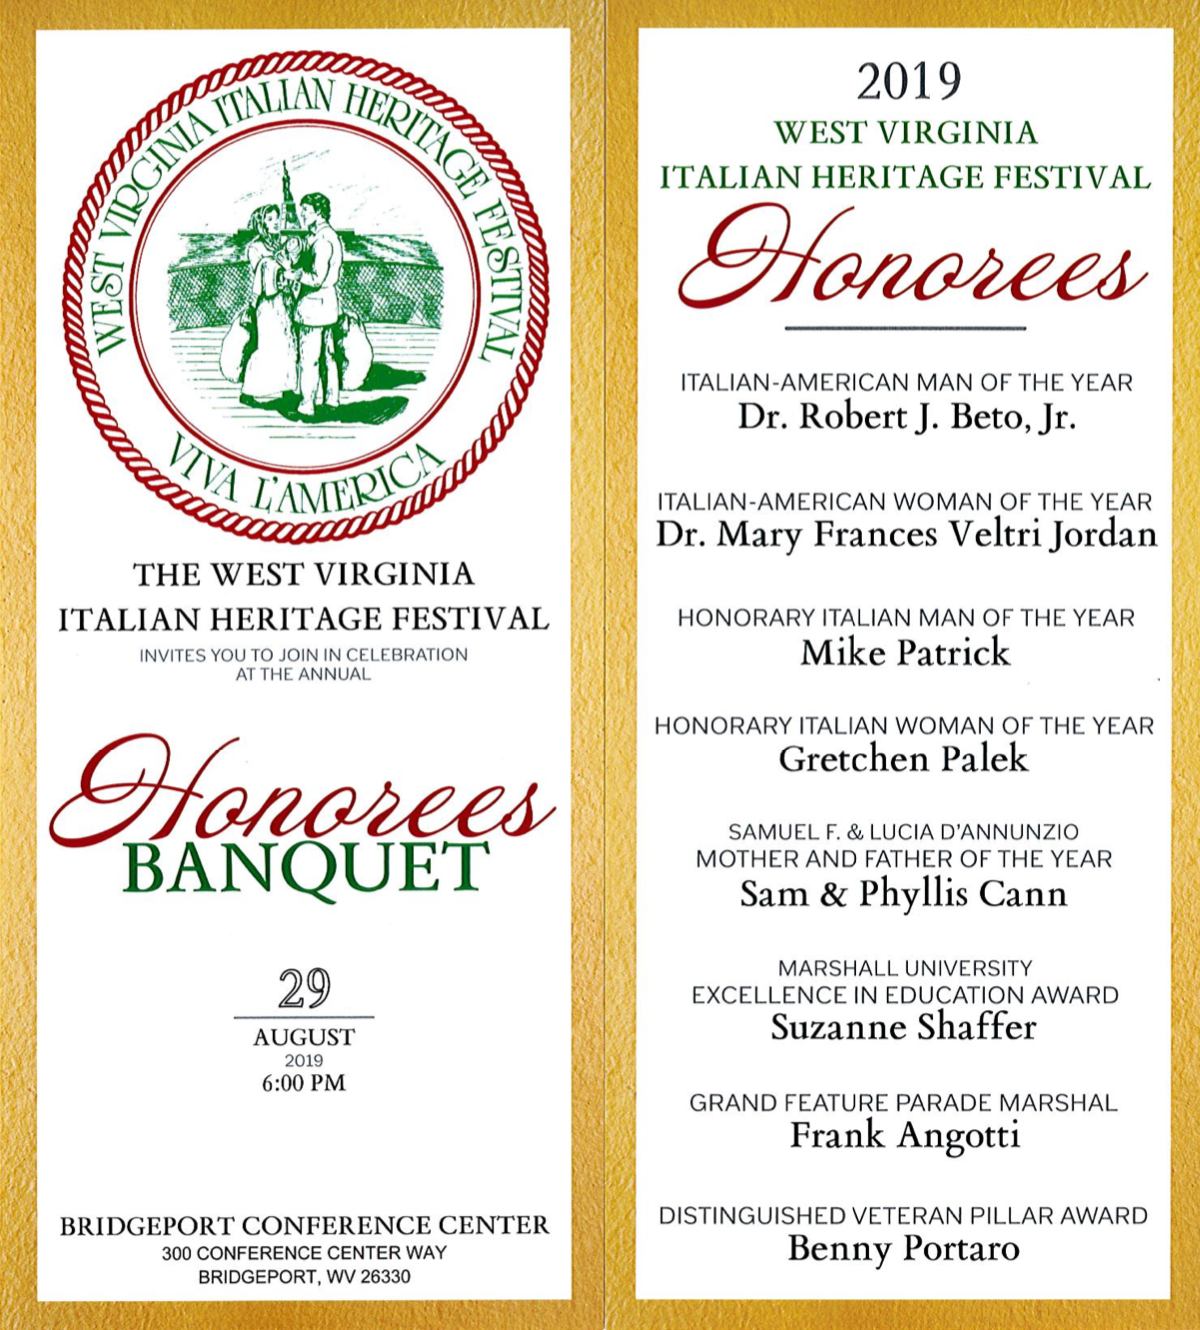 West Virginia Italian Heritage Festival Honorees